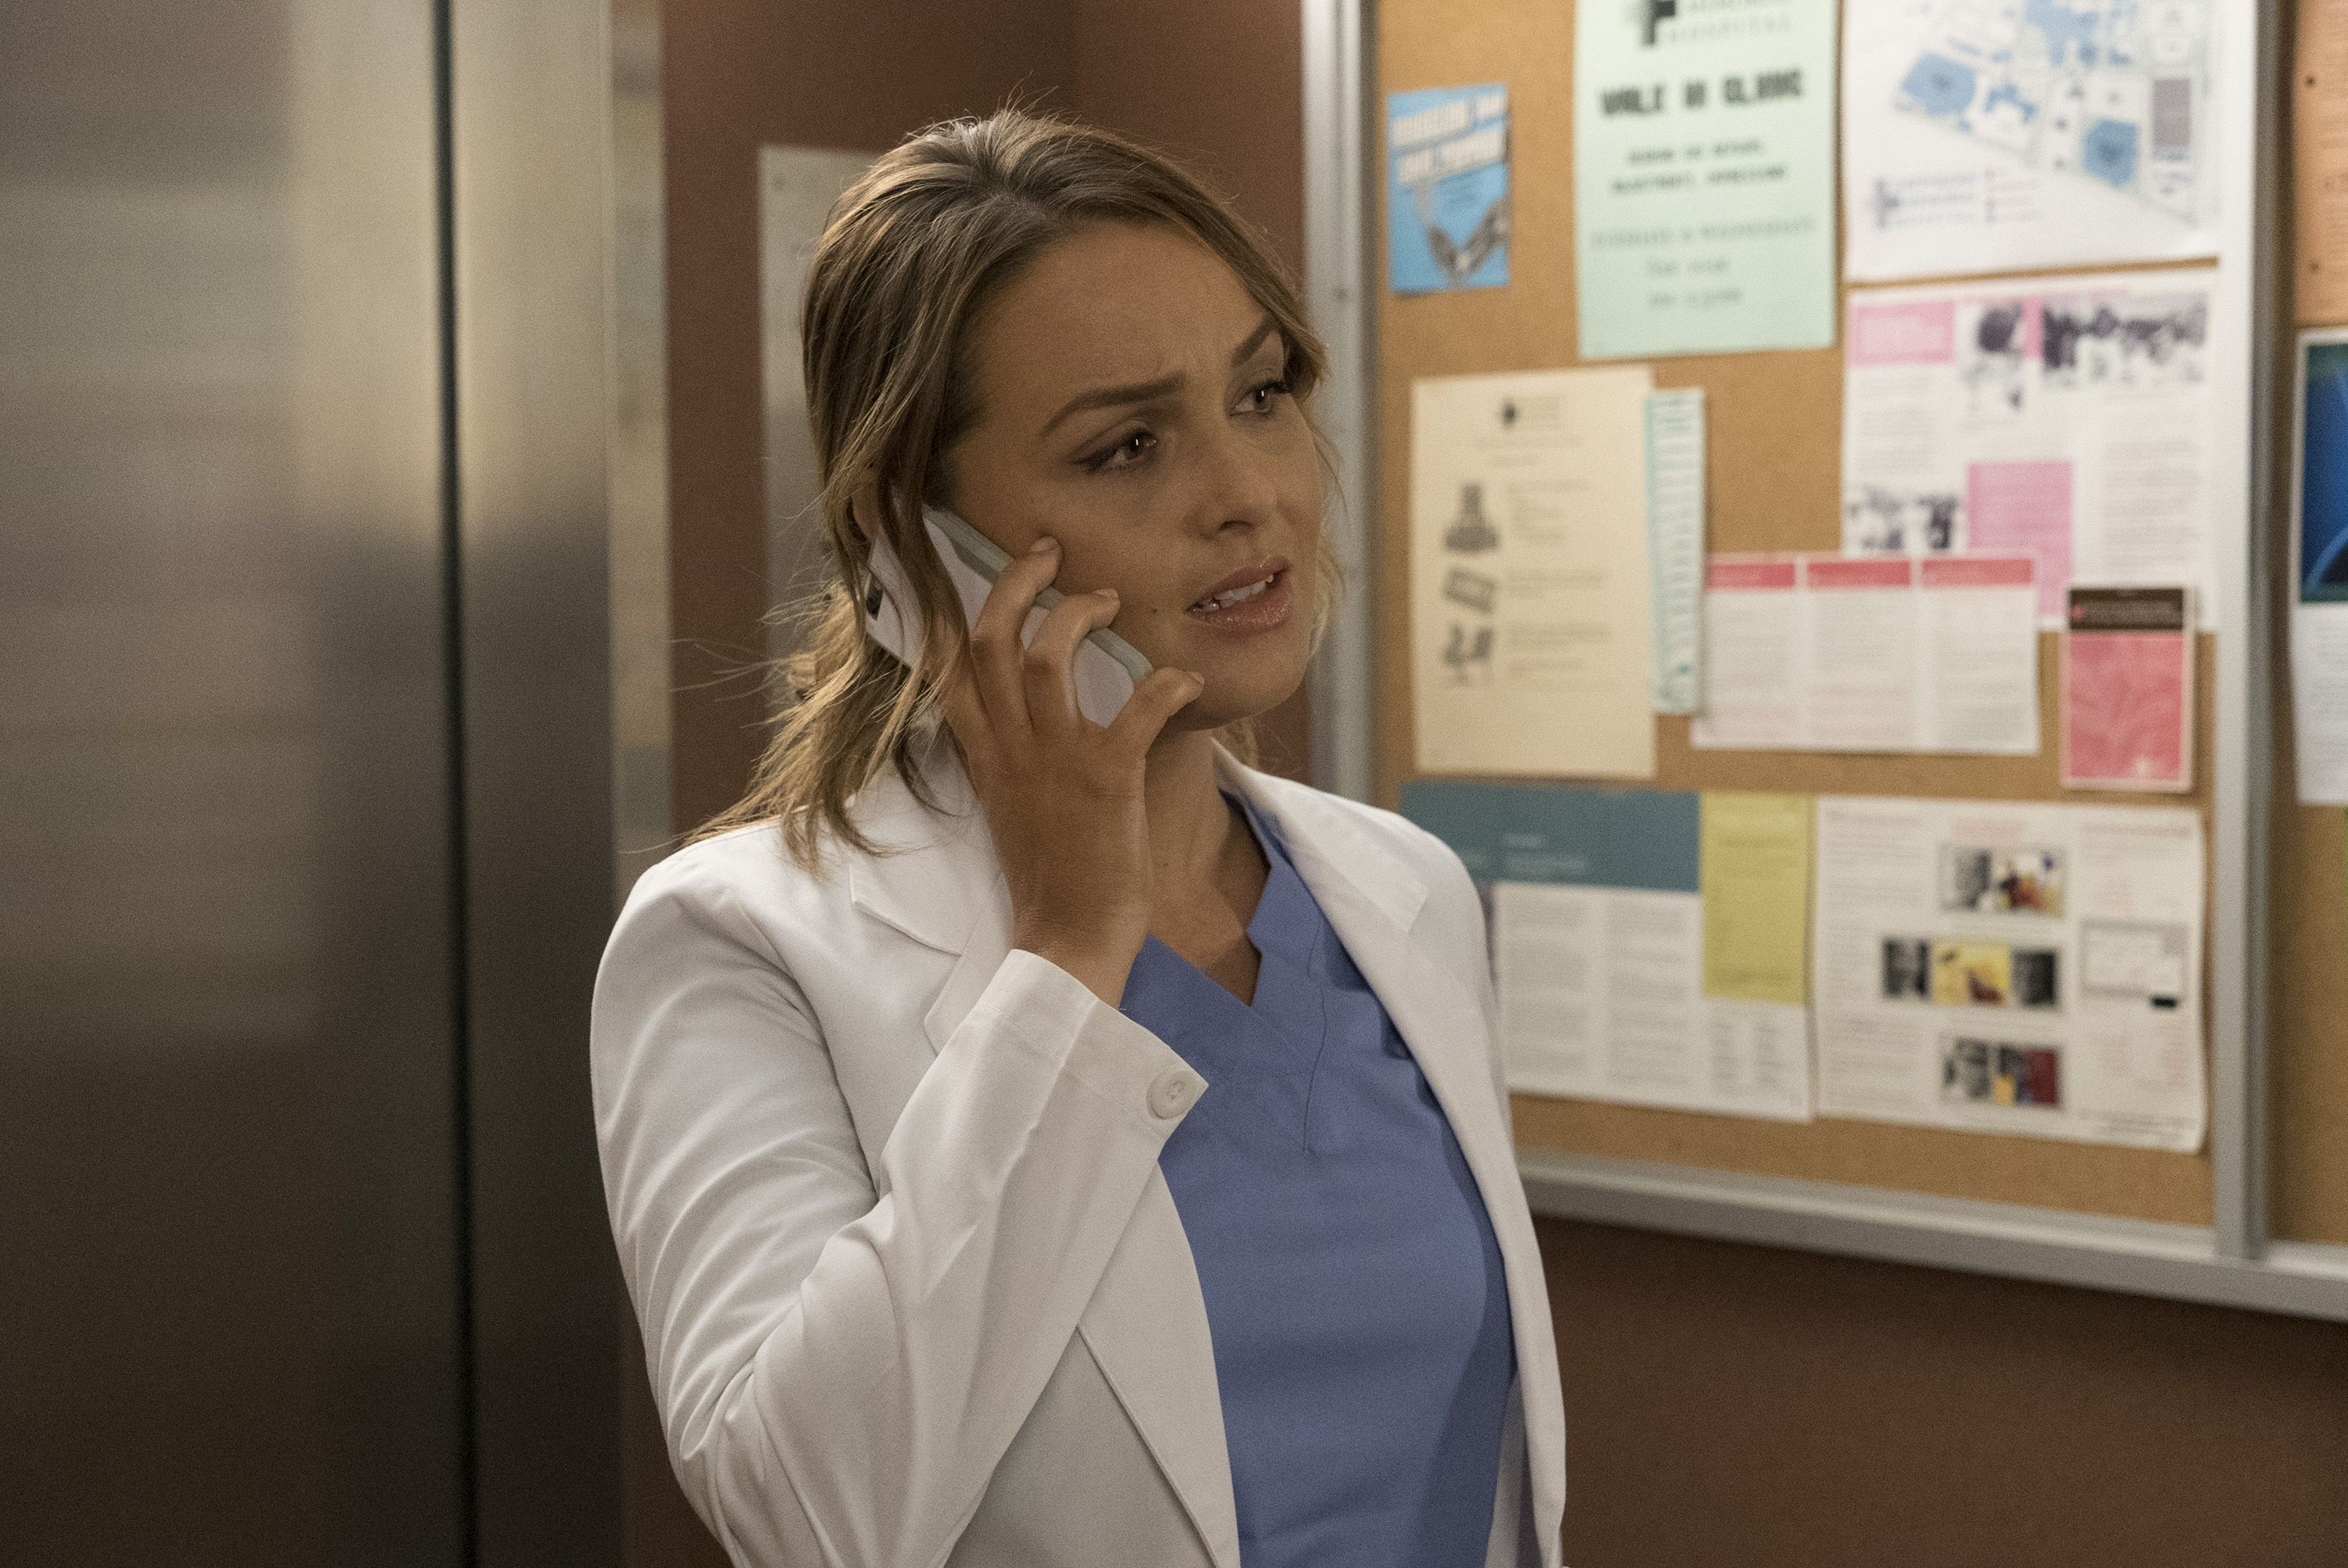 Camilla Luddington in Grey's Anatomy season 14 episode 9